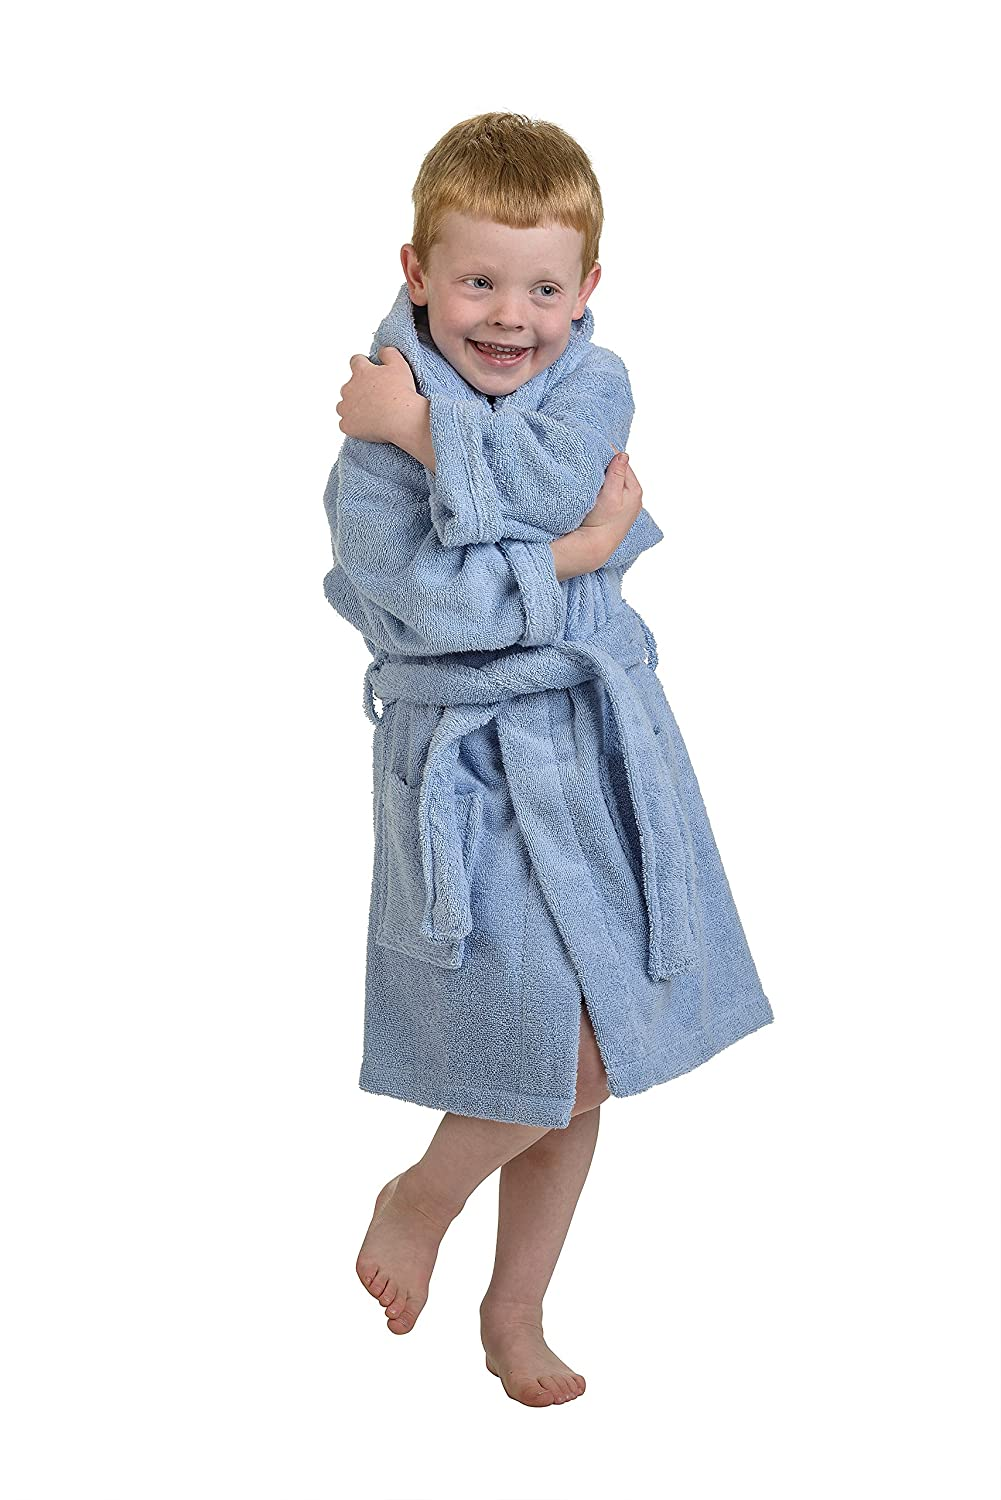 Superior Collection 100% Premium Long-Staple Combed Cotton Hooded Terry Bath Robe for Kids, Small/Medium, White ROBE KID WHITE S/M